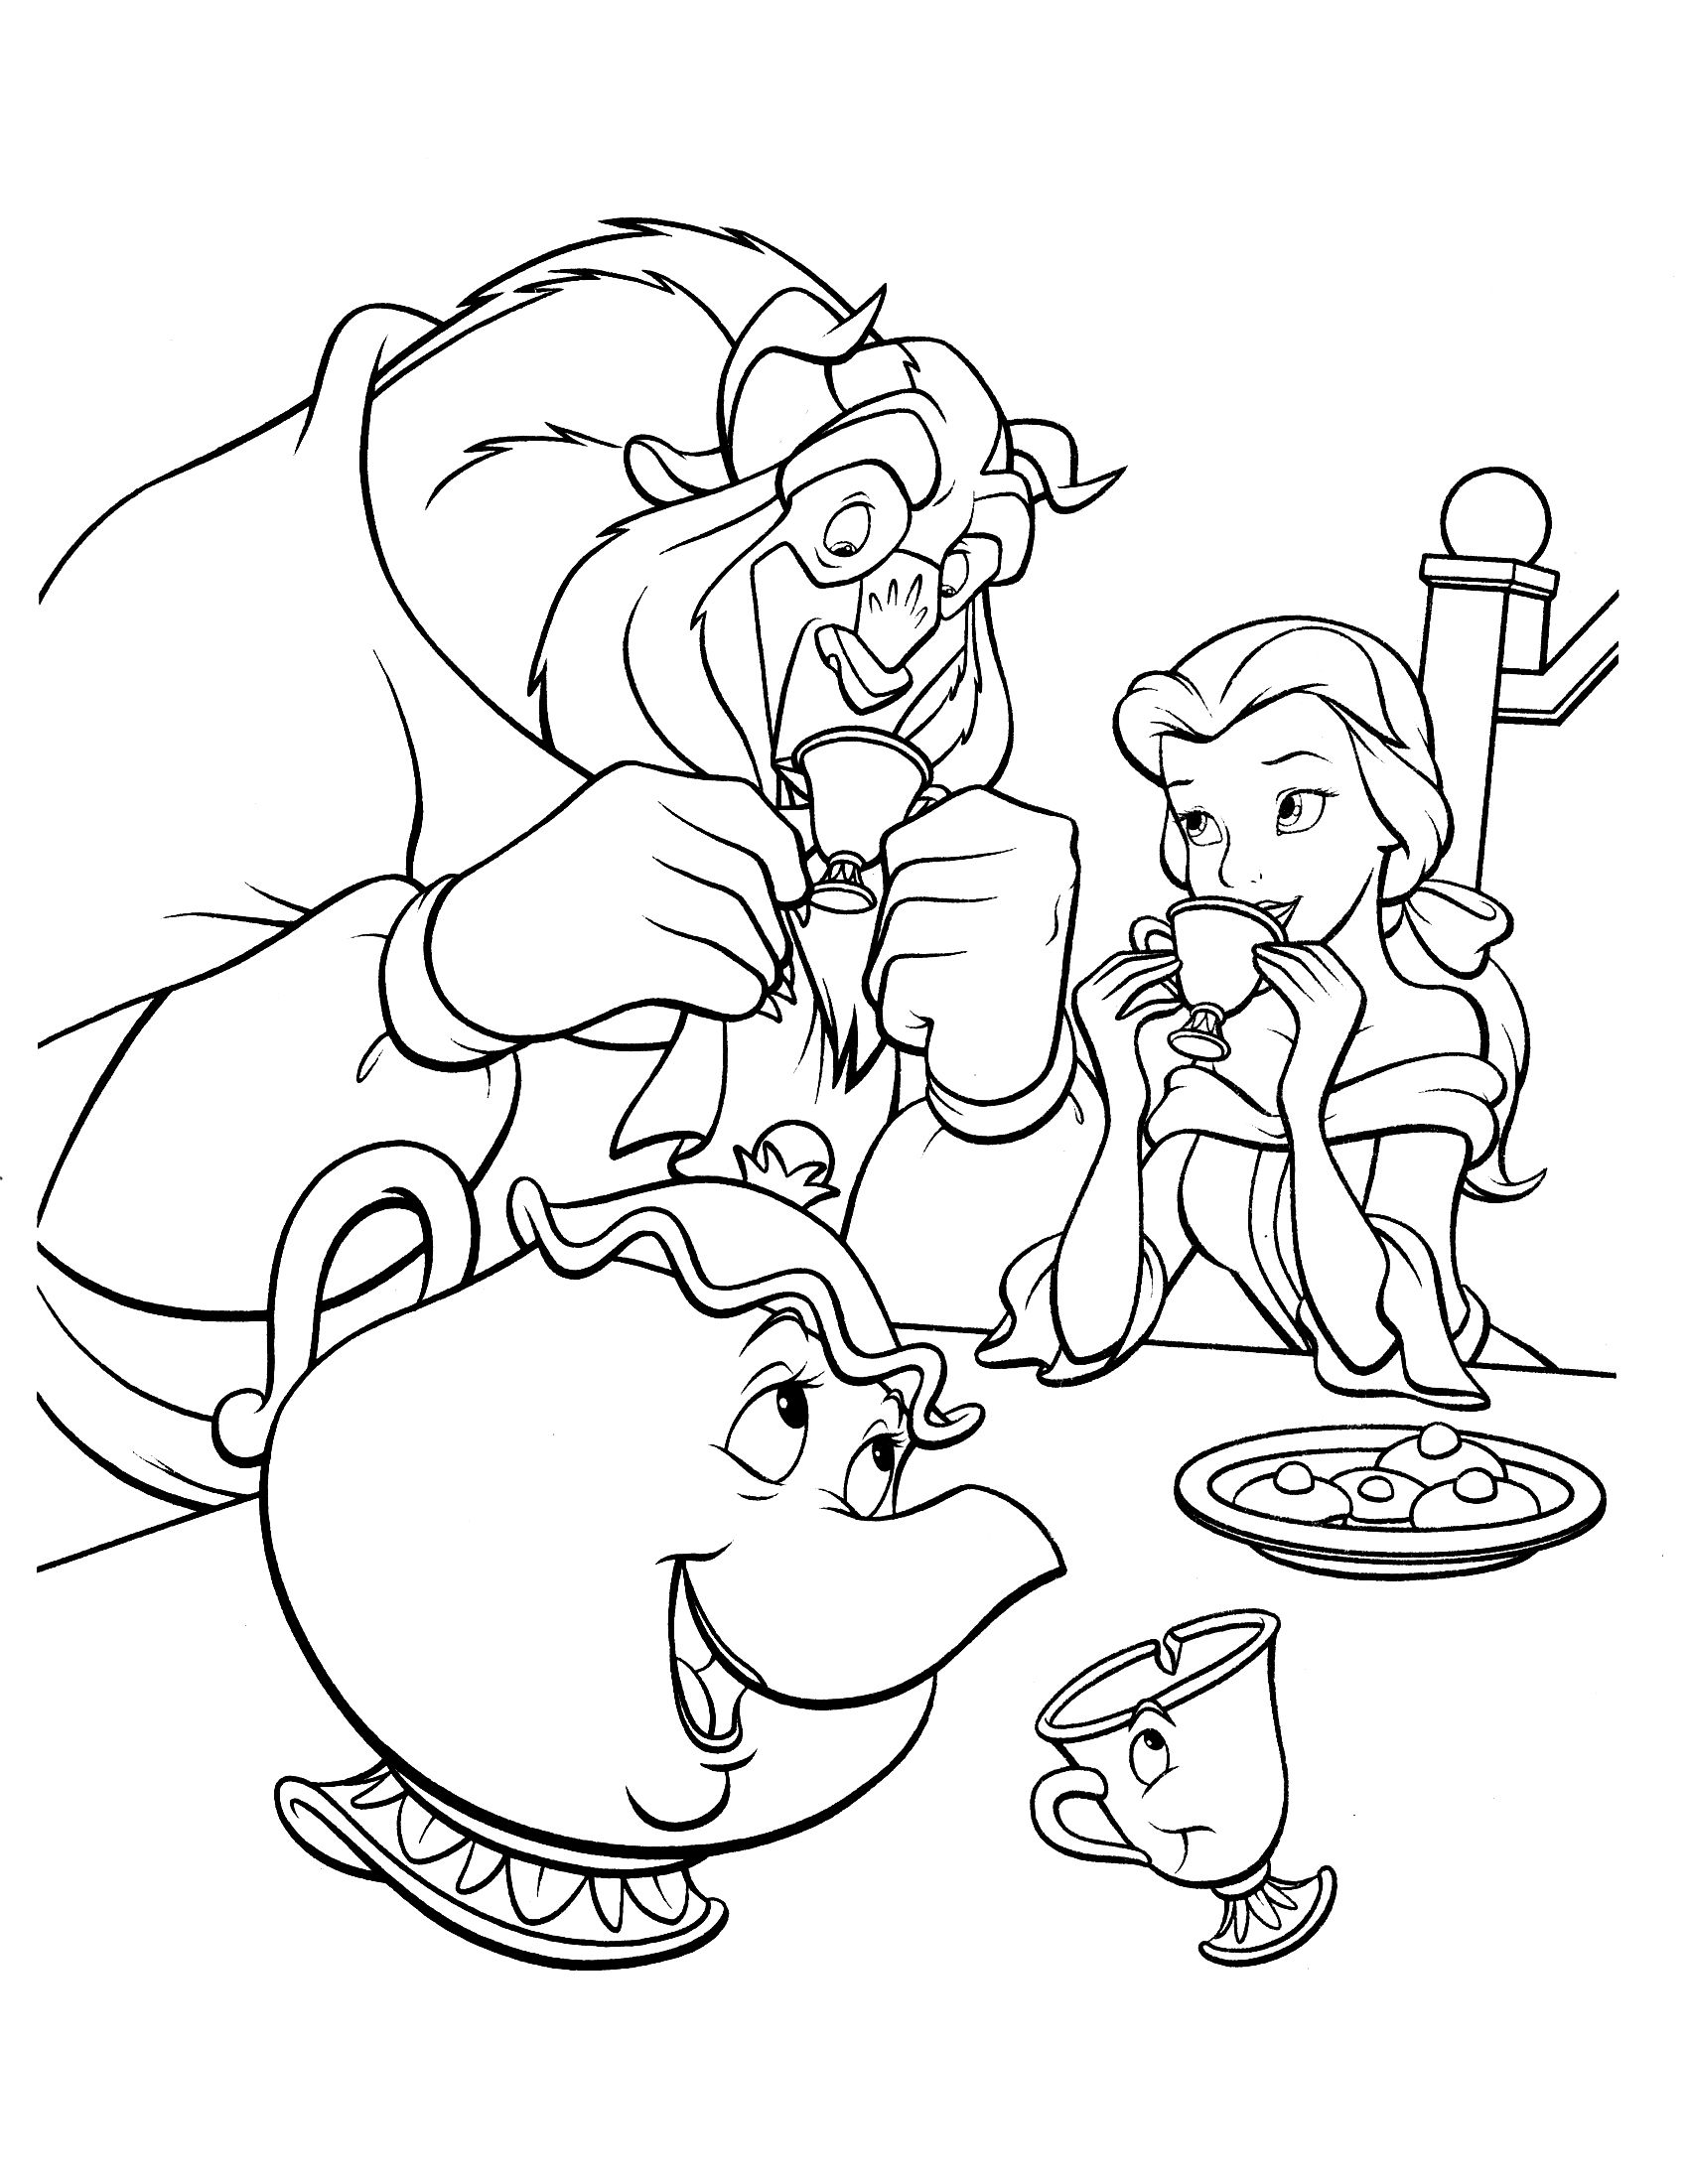 beauty and the beast printable coloring pages beauty and the beast coloring page | Disney Coloring Pages  beauty and the beast printable coloring pages